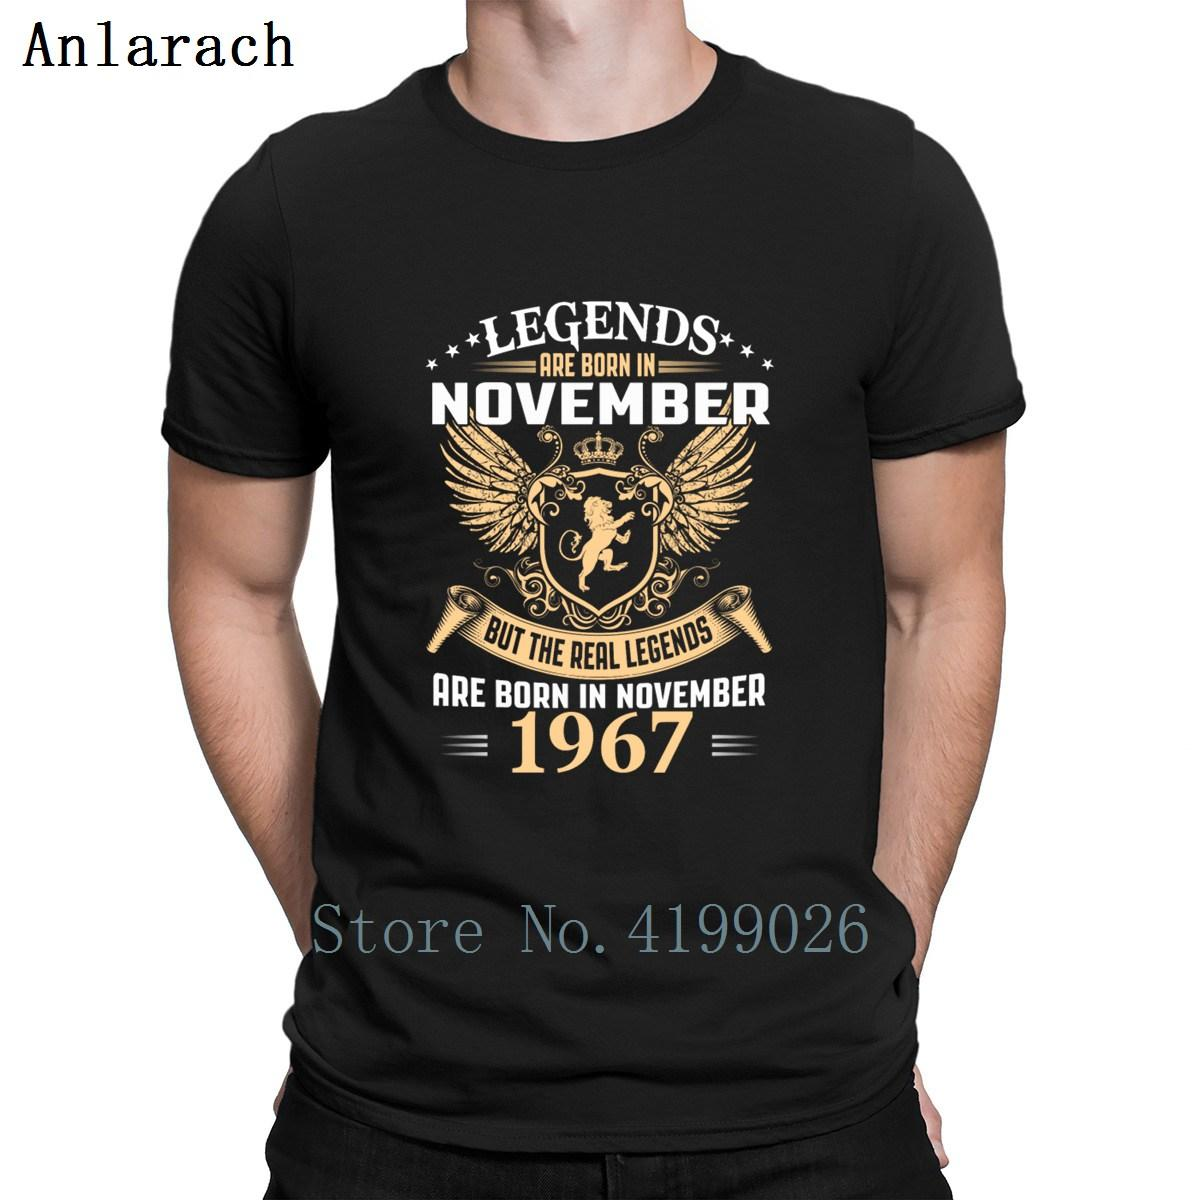 580acc412d1e4 Legends Are Born In November 1967 Tshirt Pictures Character New Clothing  Tshirt For Men Summer Fun Big Sizes Hiphop Tops Funny Screen Tees Shirts  With ...